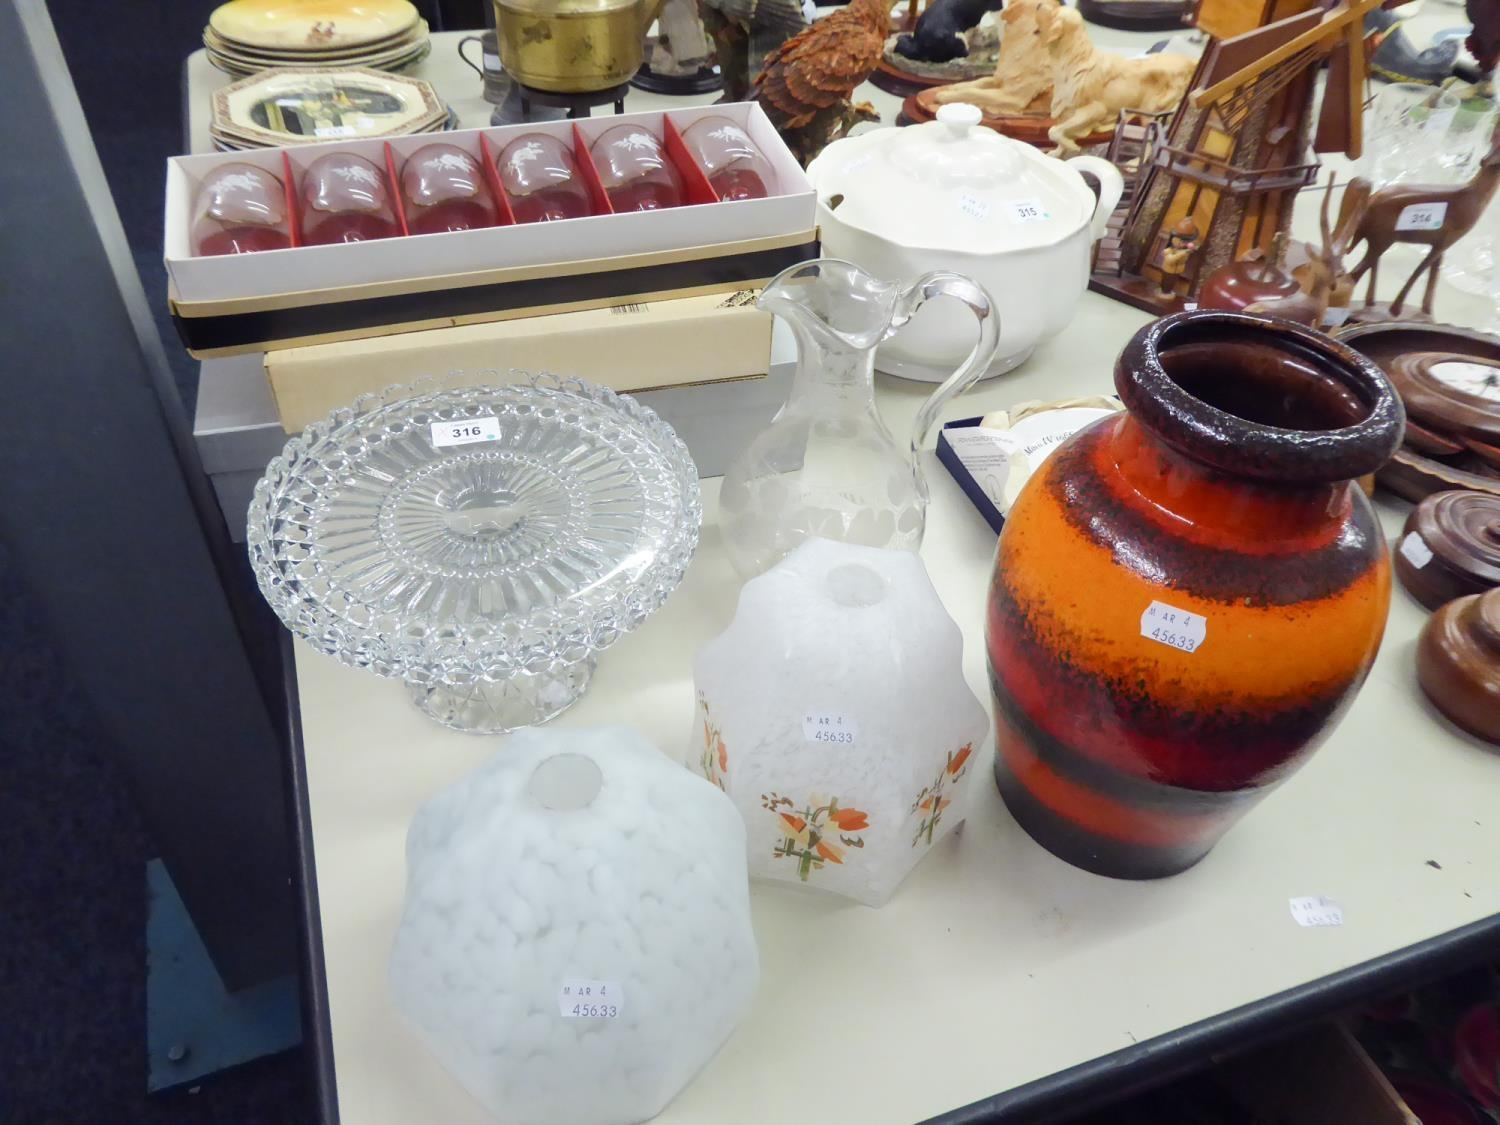 Lot 316 - MIXED LOT TO INCLUDE; WEST GERMAN VASE, GLASS WATER JUG, TWO GLASS LIGHT SHADES, GLASS CAKE STAND,